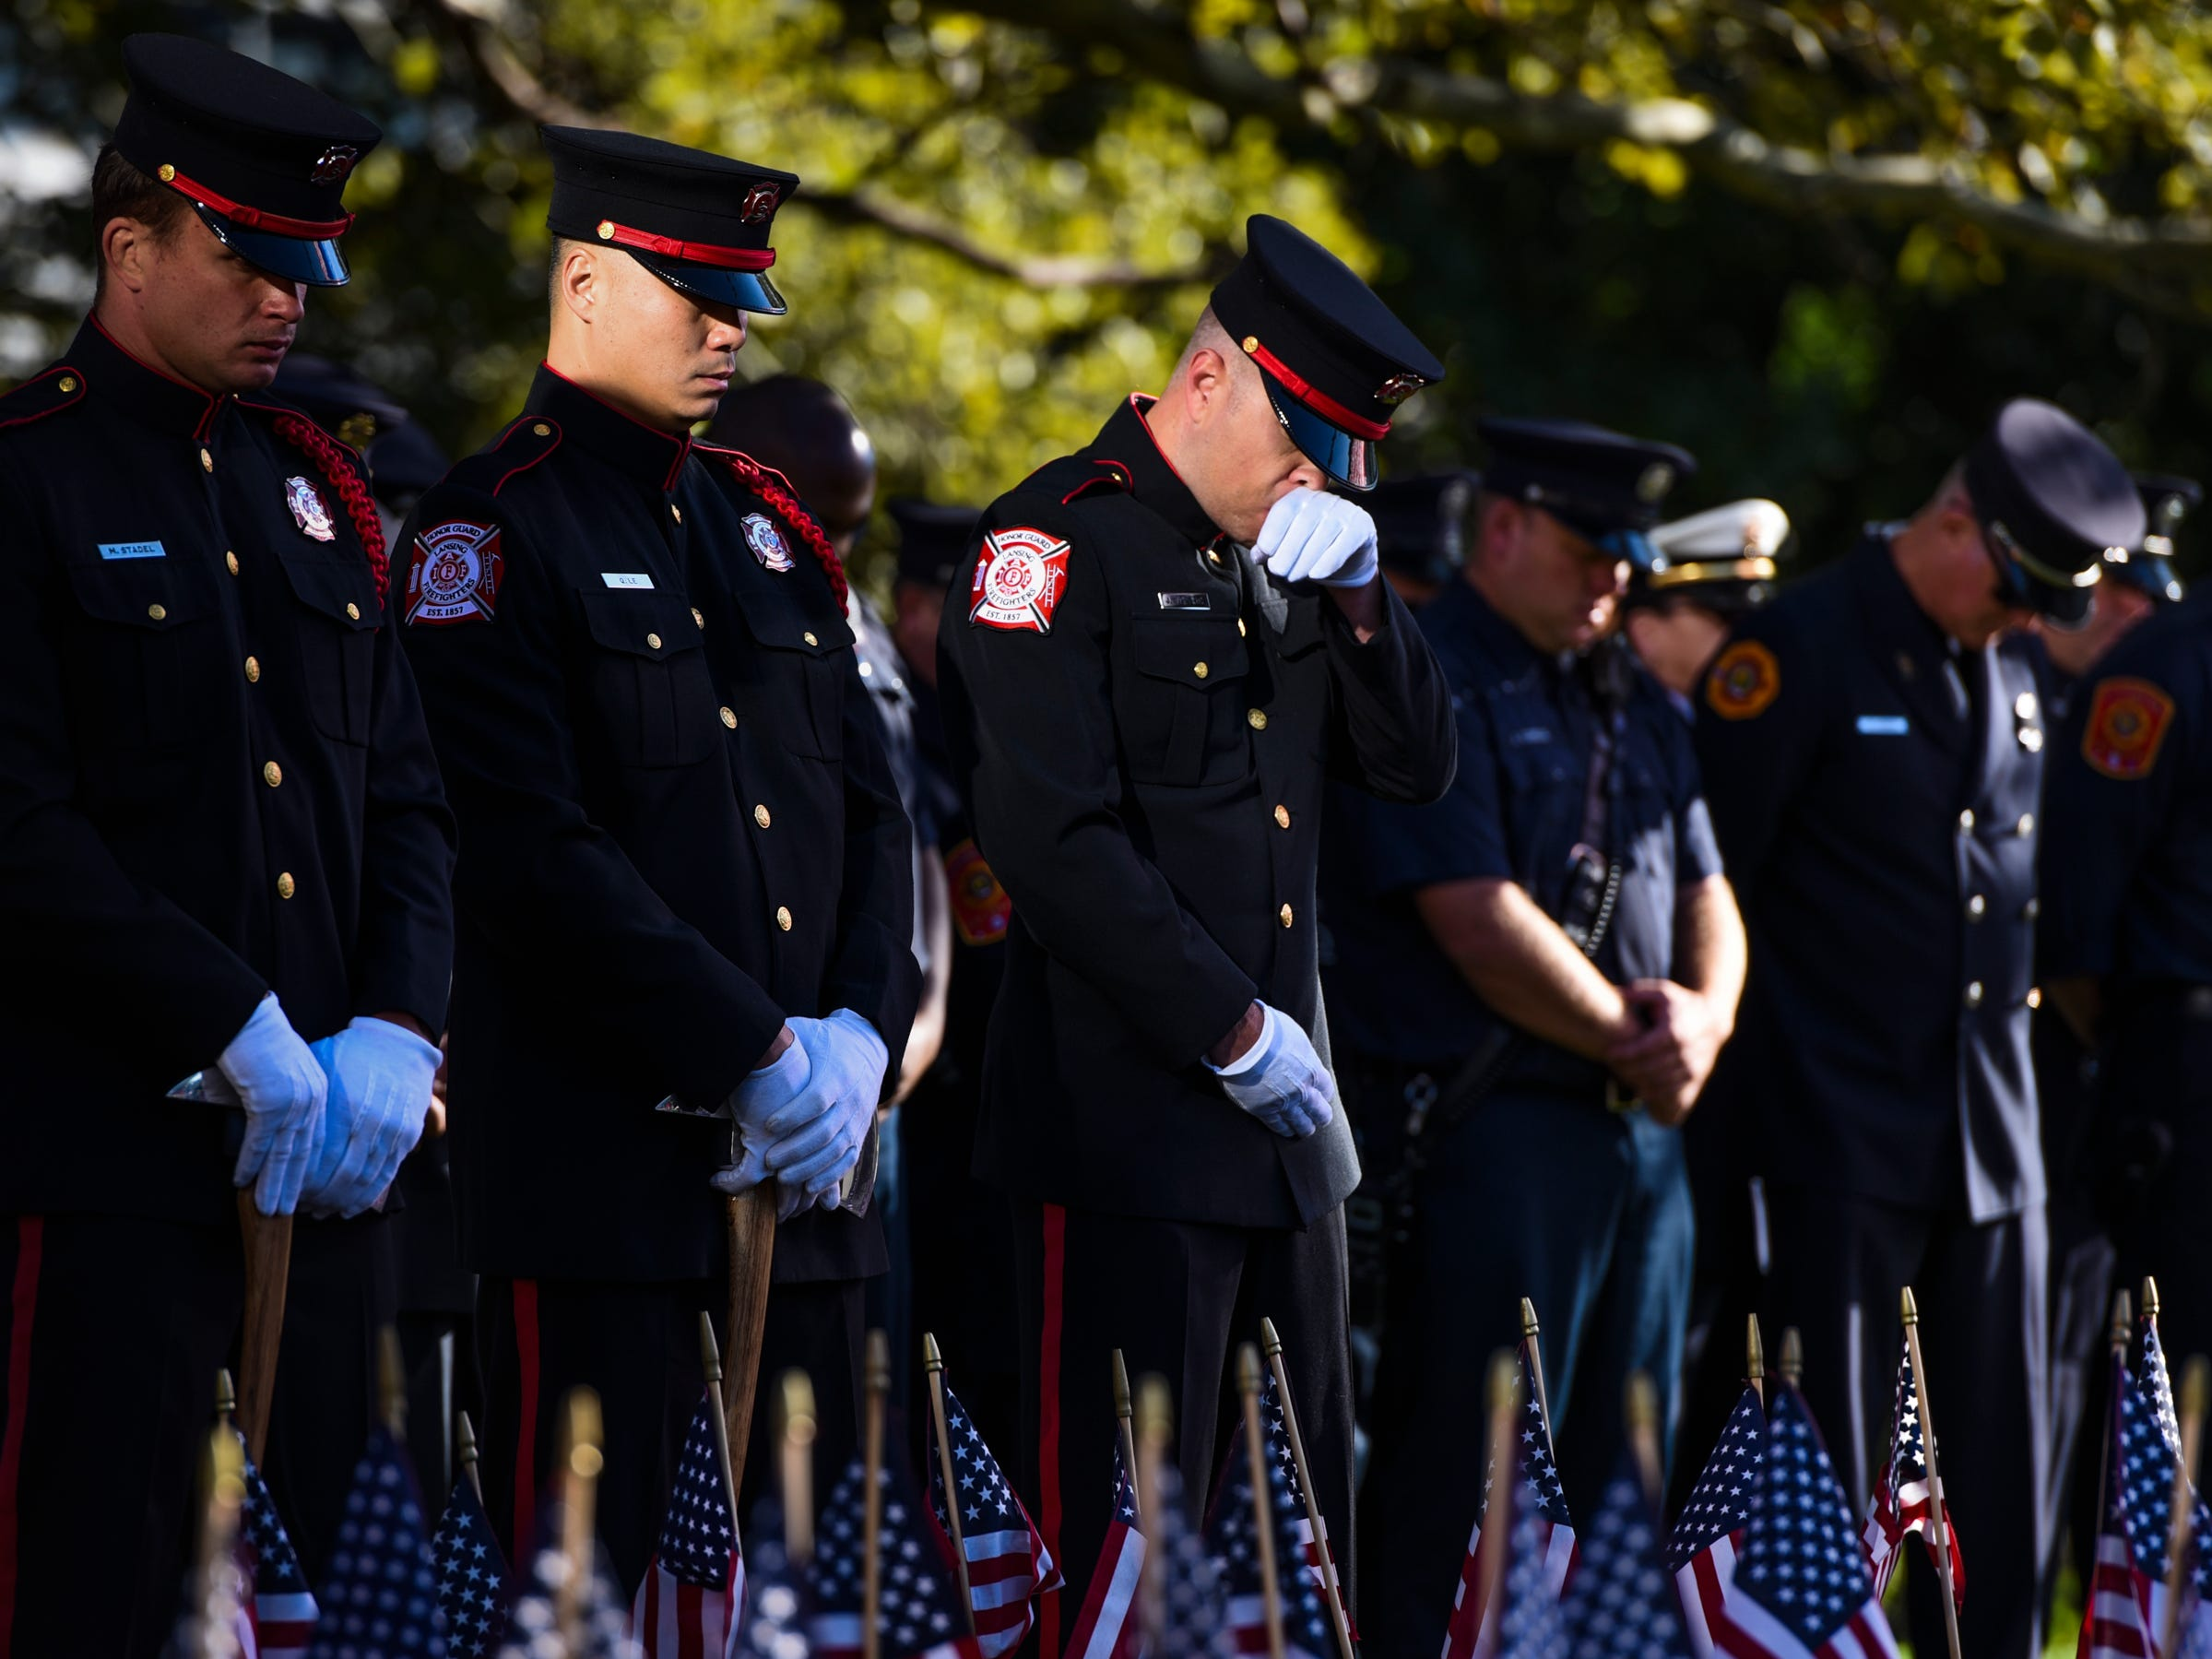 A member of the Lansing Fire Department reacts during a moment of silence honoring fallen comrade Dennis Rodeman, who died in the line of duty Sept. 9, 2016.  Hundreds gathered Tuesday morning at the 9/11 Memorial in downtown Lansing, marking 17 years since the 9/11 attacks.  [AP Photo/Matthew Dae Smith/Lansing State Journal]